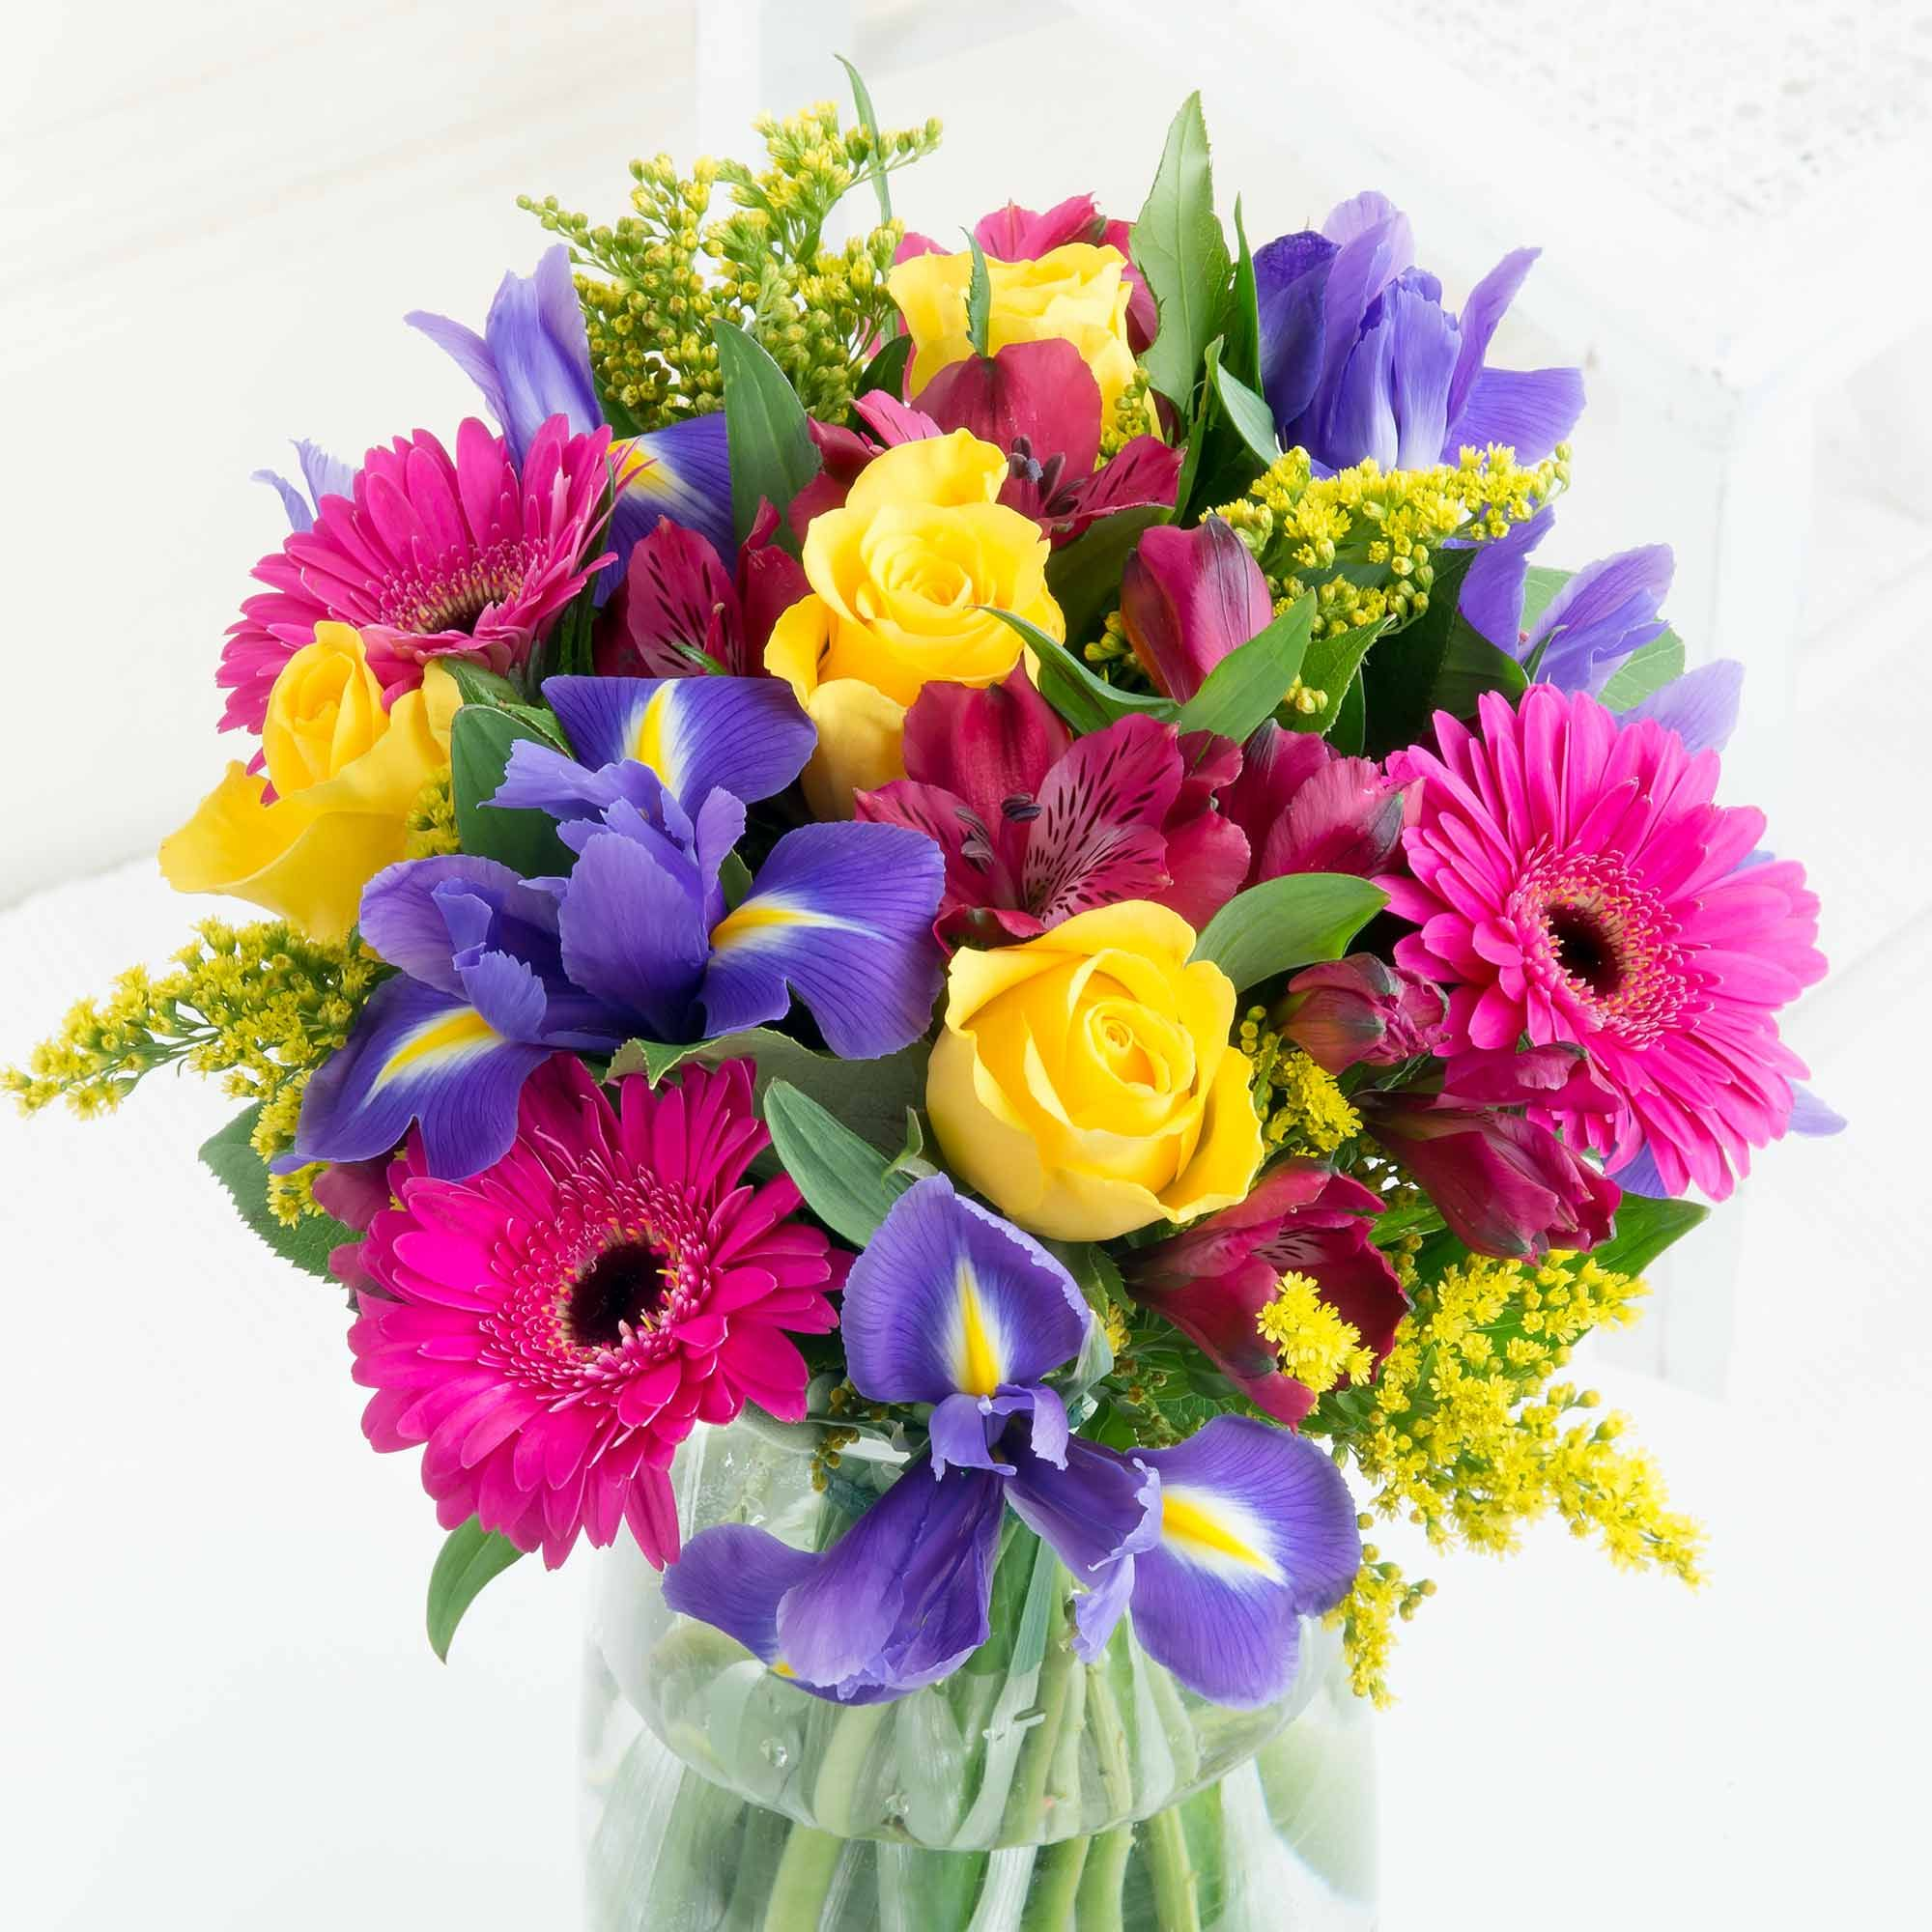 Flower Is The Reproductive Part Of A Plant That Produces Seeds Are Also Called The Bloom Or Blossom Of A Plant Flower Delivery Birthday Flowers Flower Seeds